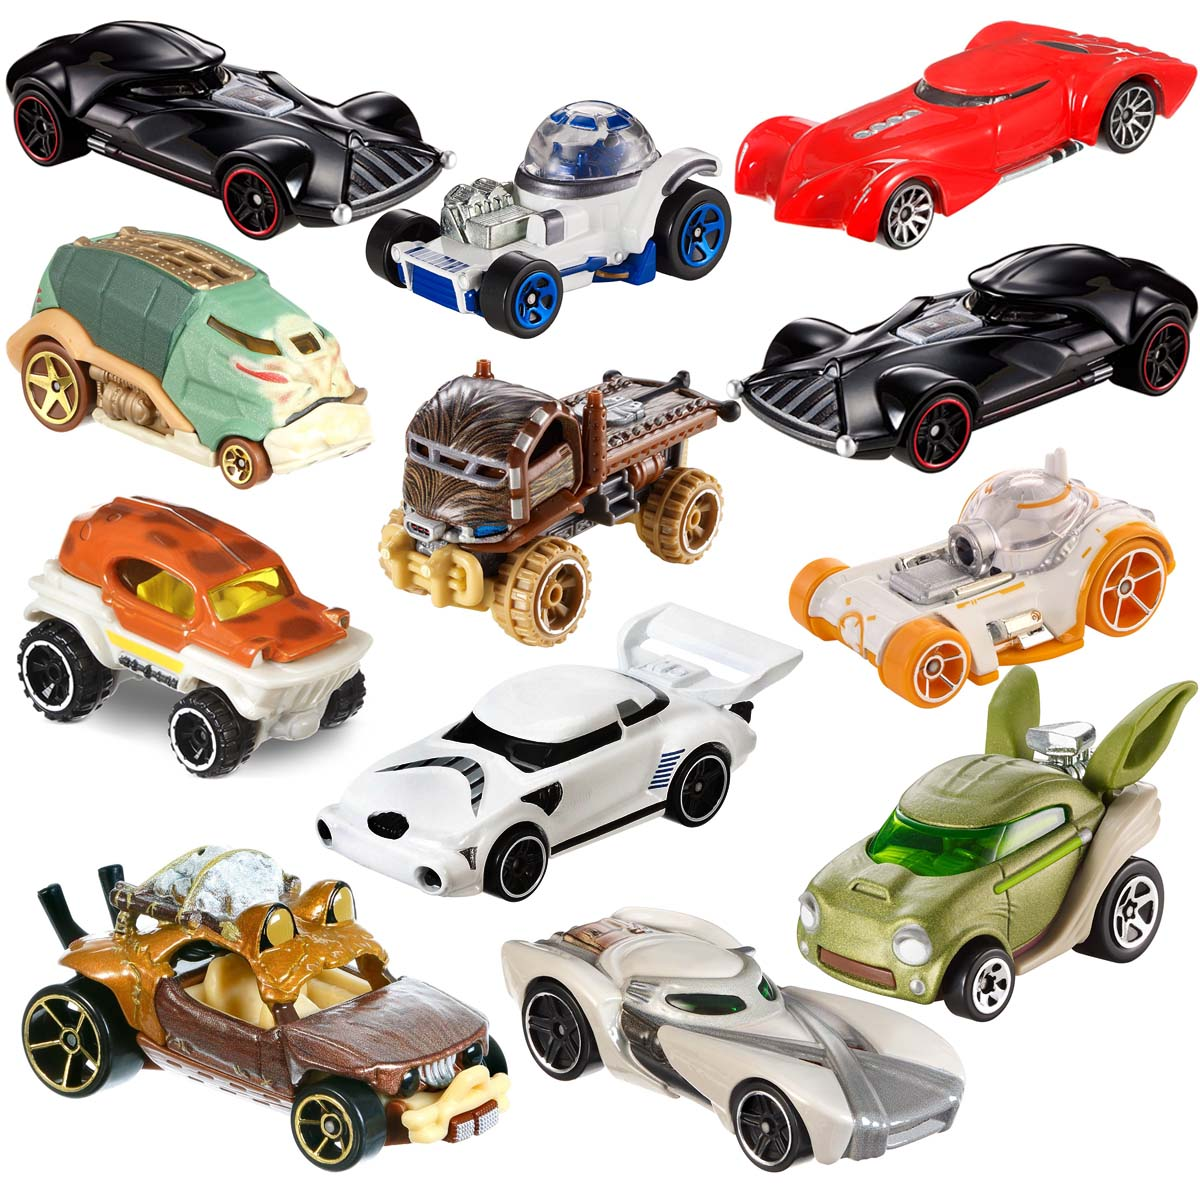 Hot Wheels (Set Of 12) Die Cast Star Wars Toys Characters Cars Action Figure Toy by